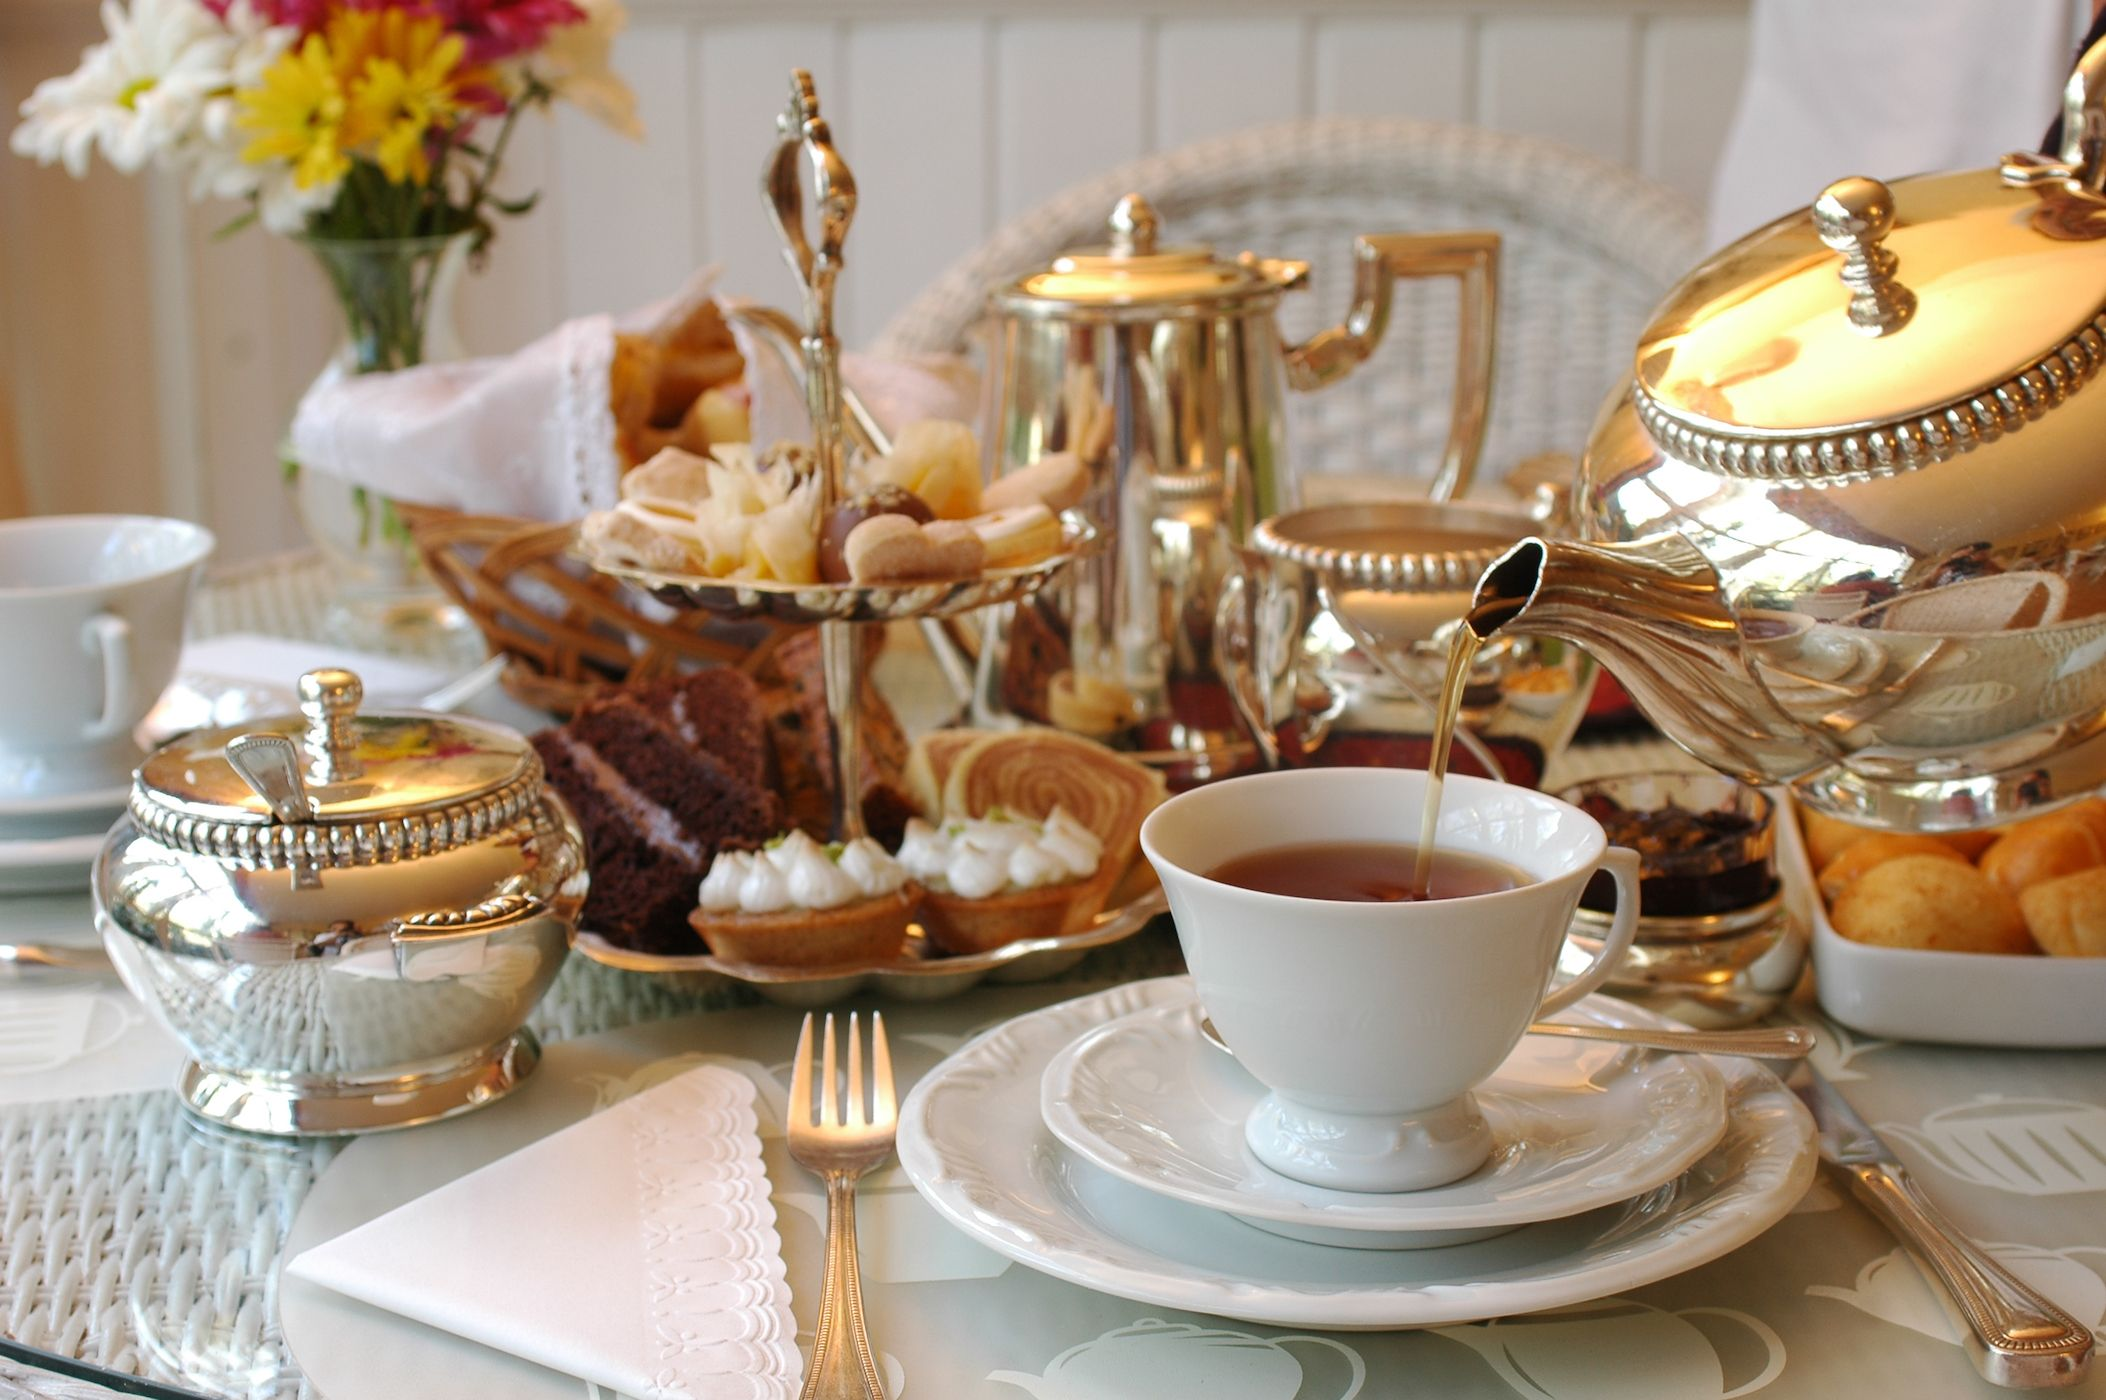 Tea being poured into a cup on a table set for afternoon tea